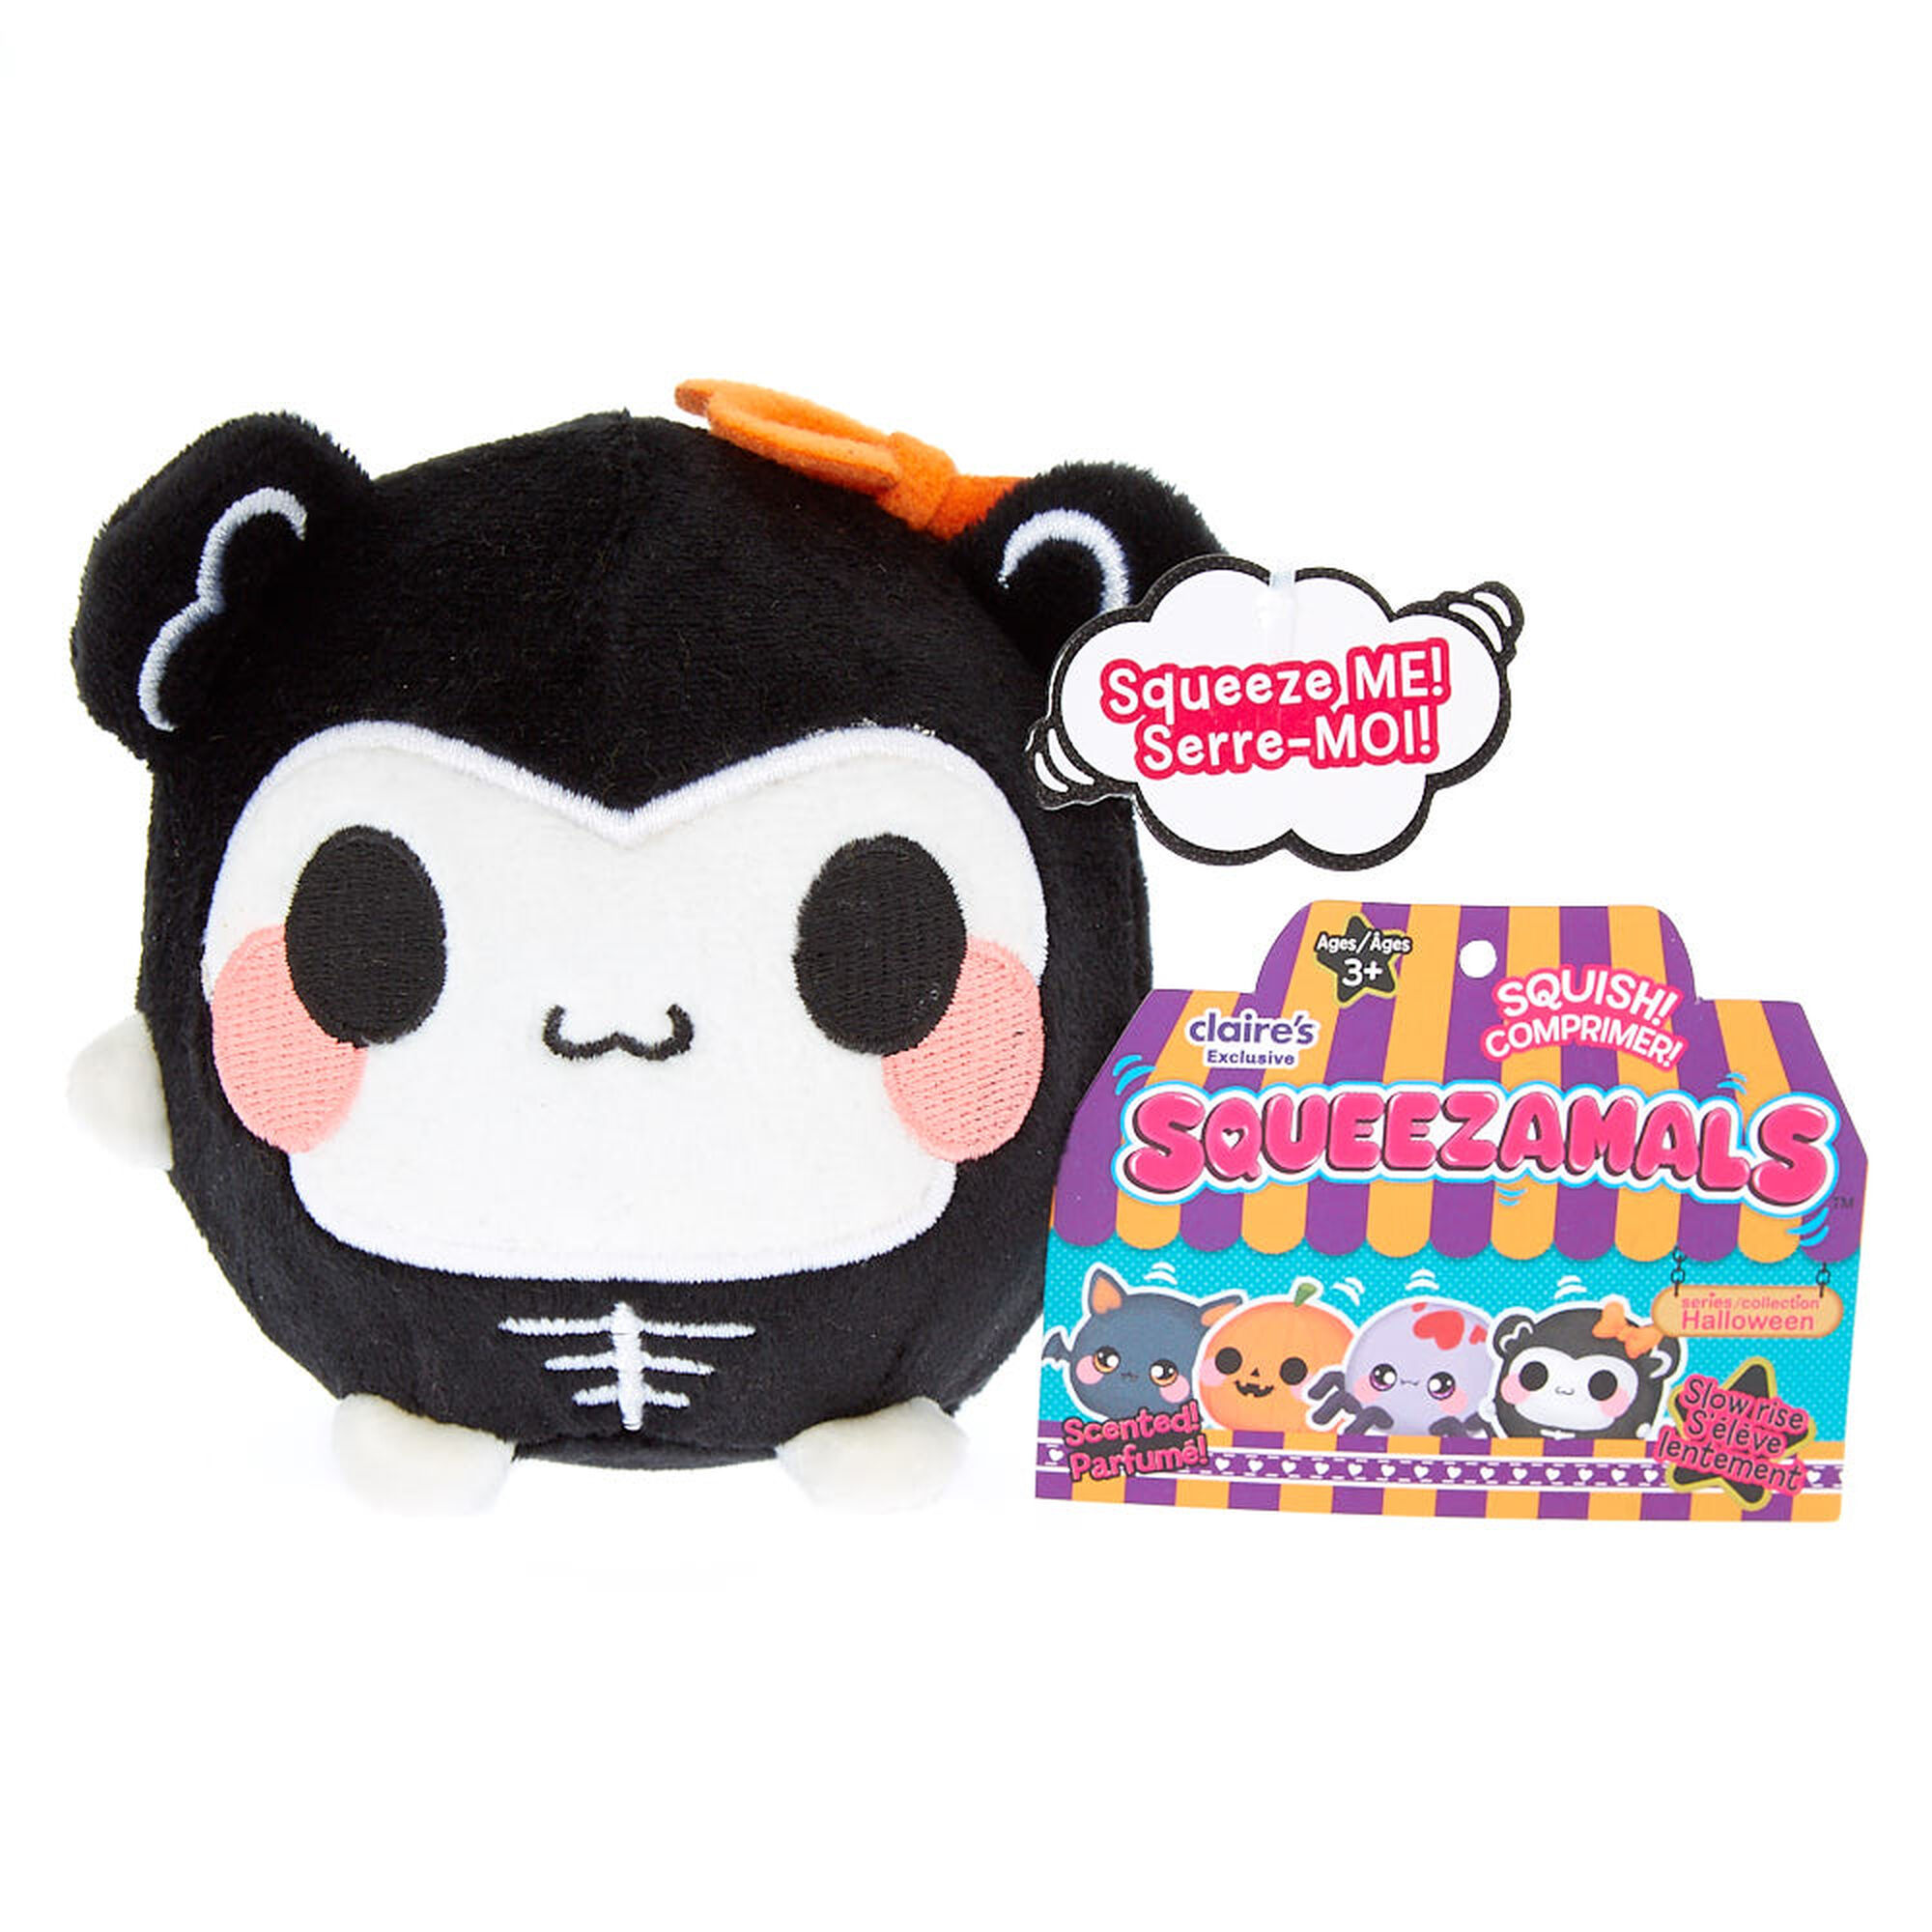 squeezamals scented stella the skeleton plush toy | claire's us